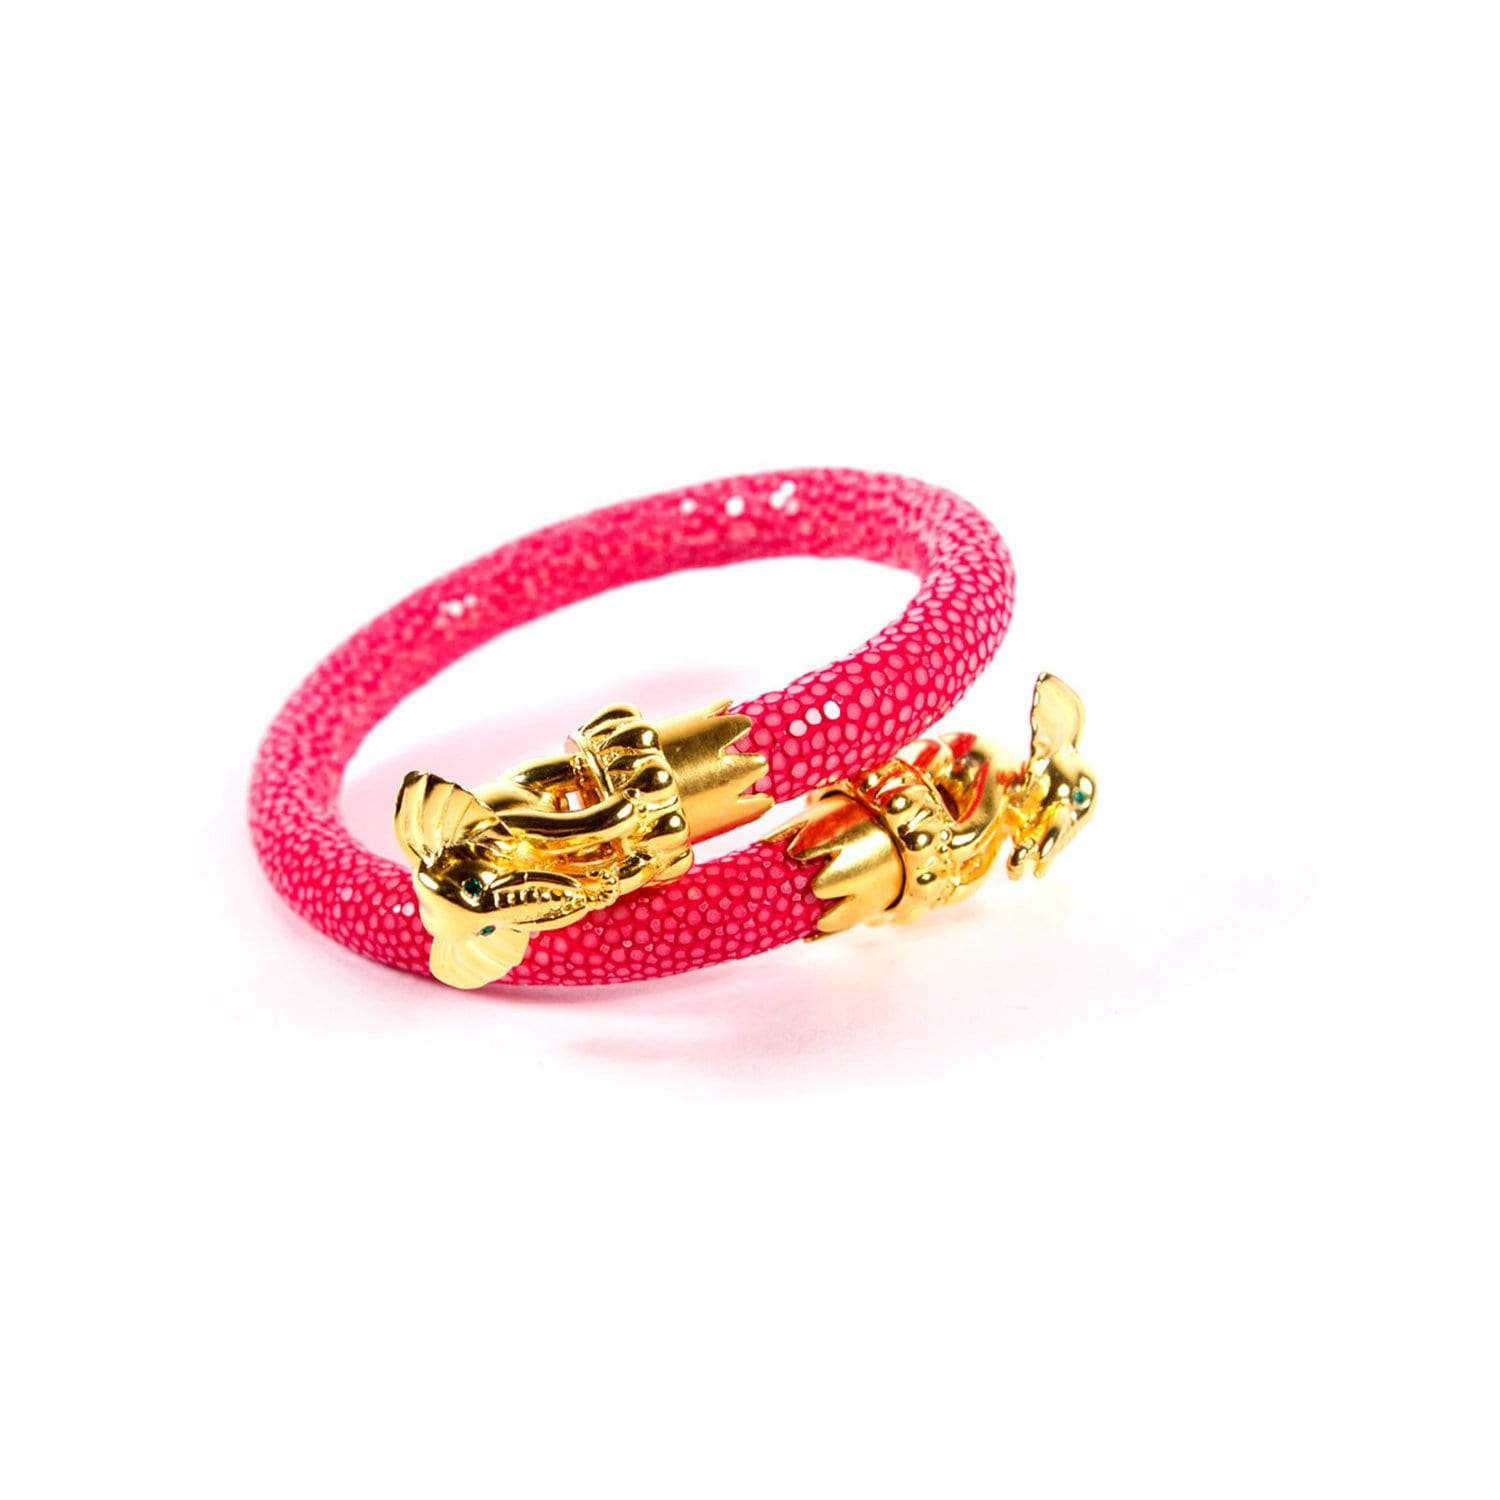 Ganesha End Caps on Pink Stingray Wrist Wrap | BuDhaGirl